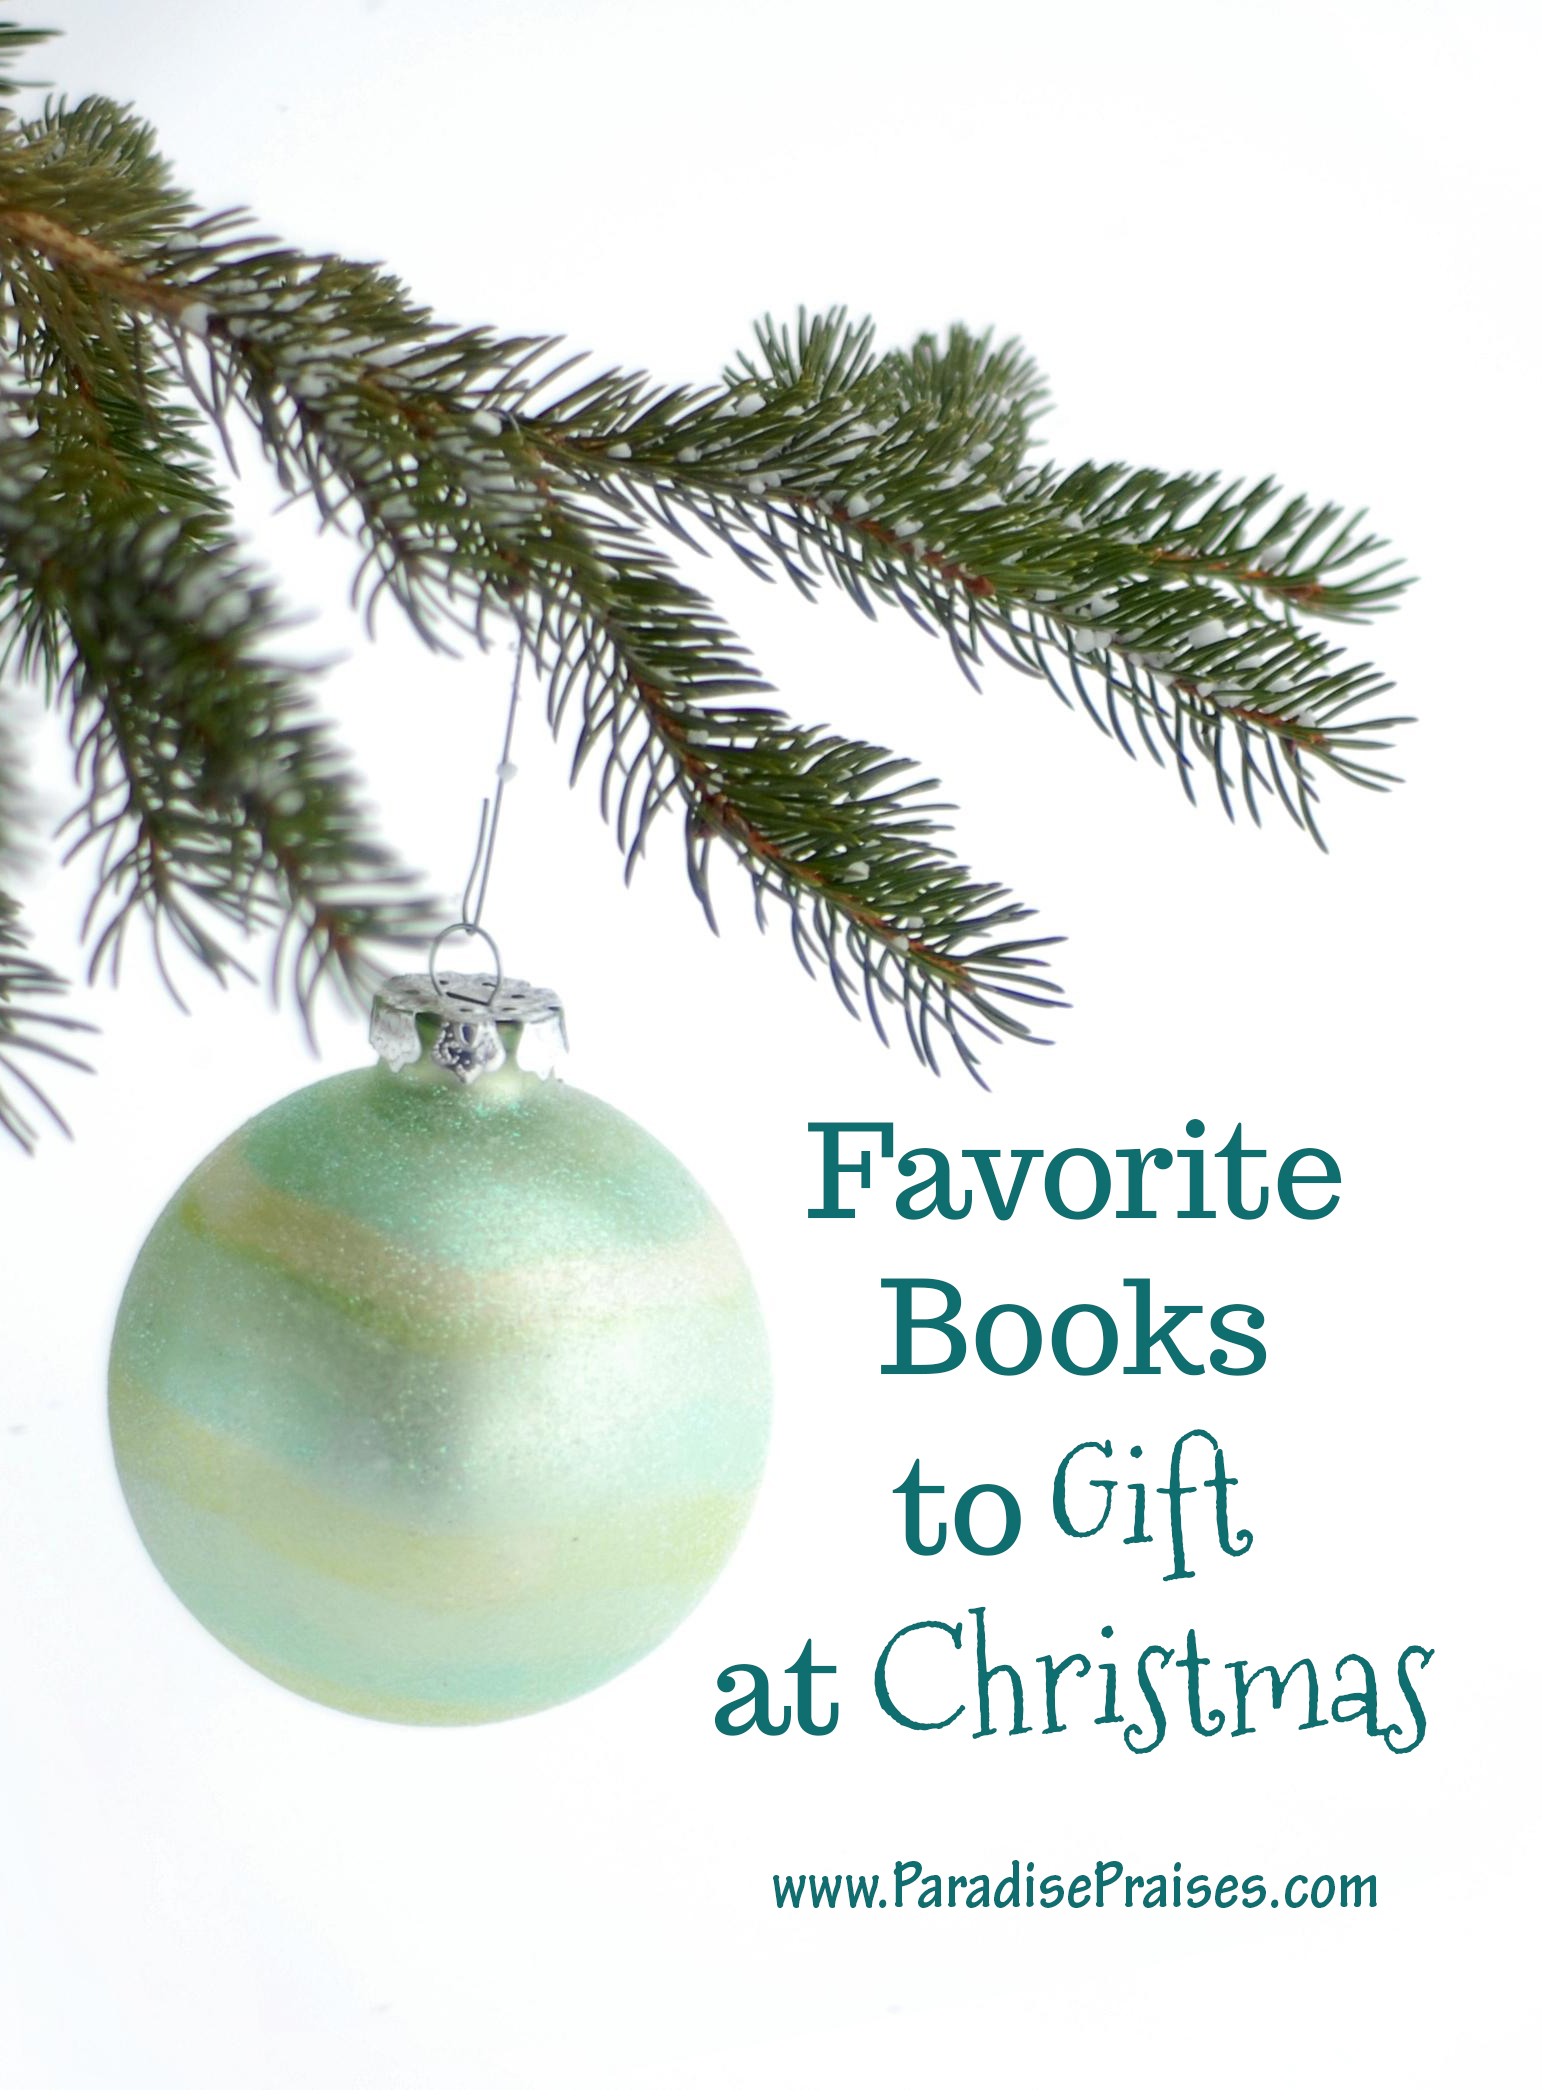 10 Favorite Gift Books for Christmas